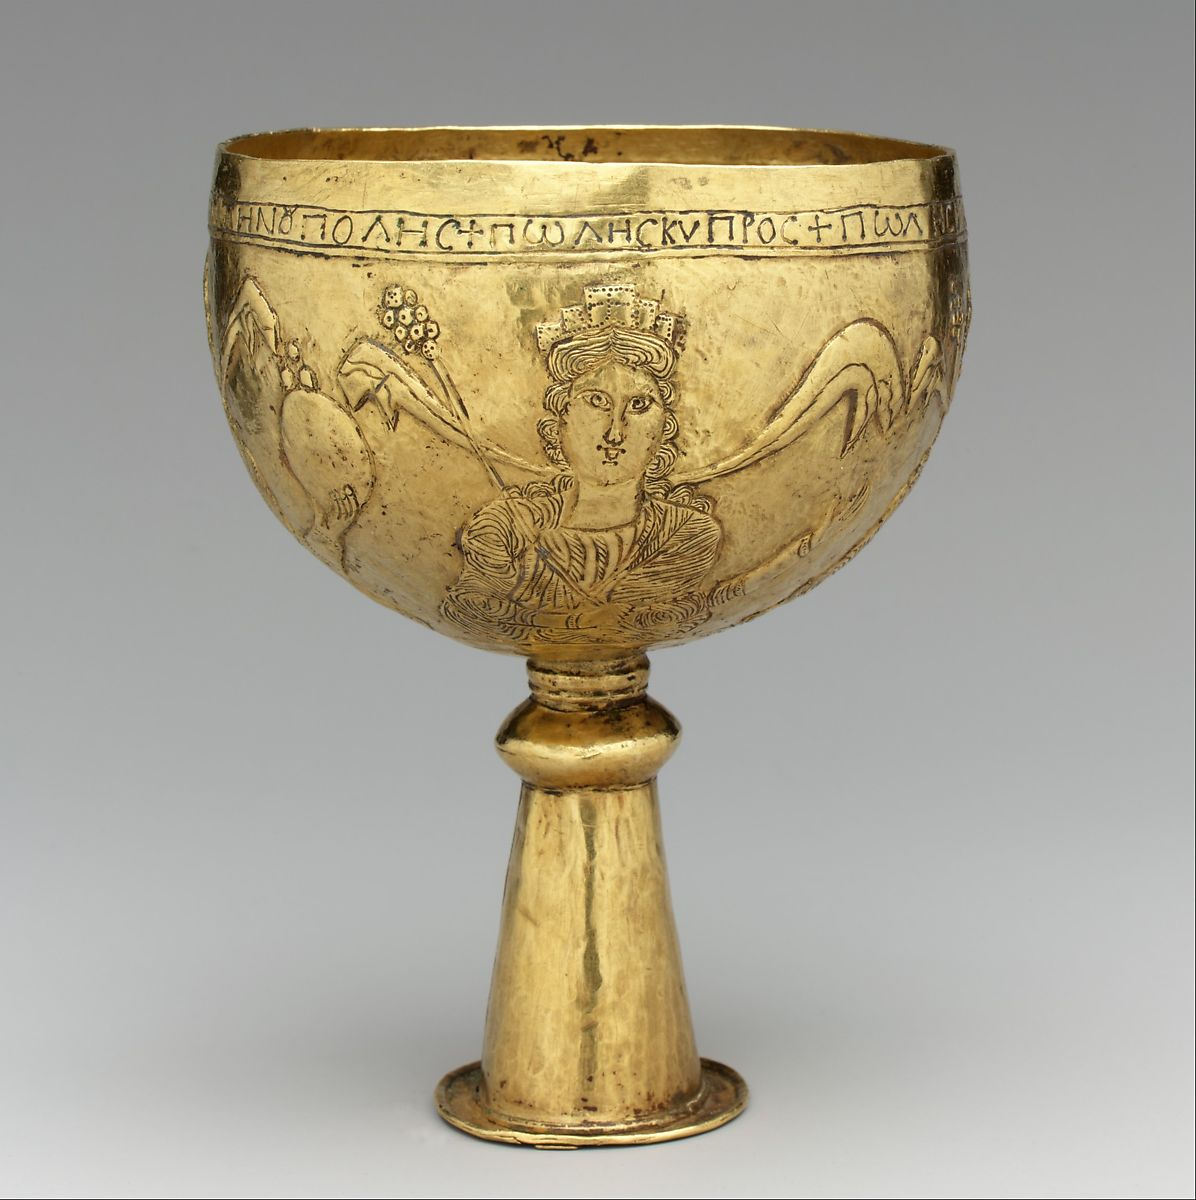 Vase Vintage Gold Goblet With Personifications Of Cyprus, Rome